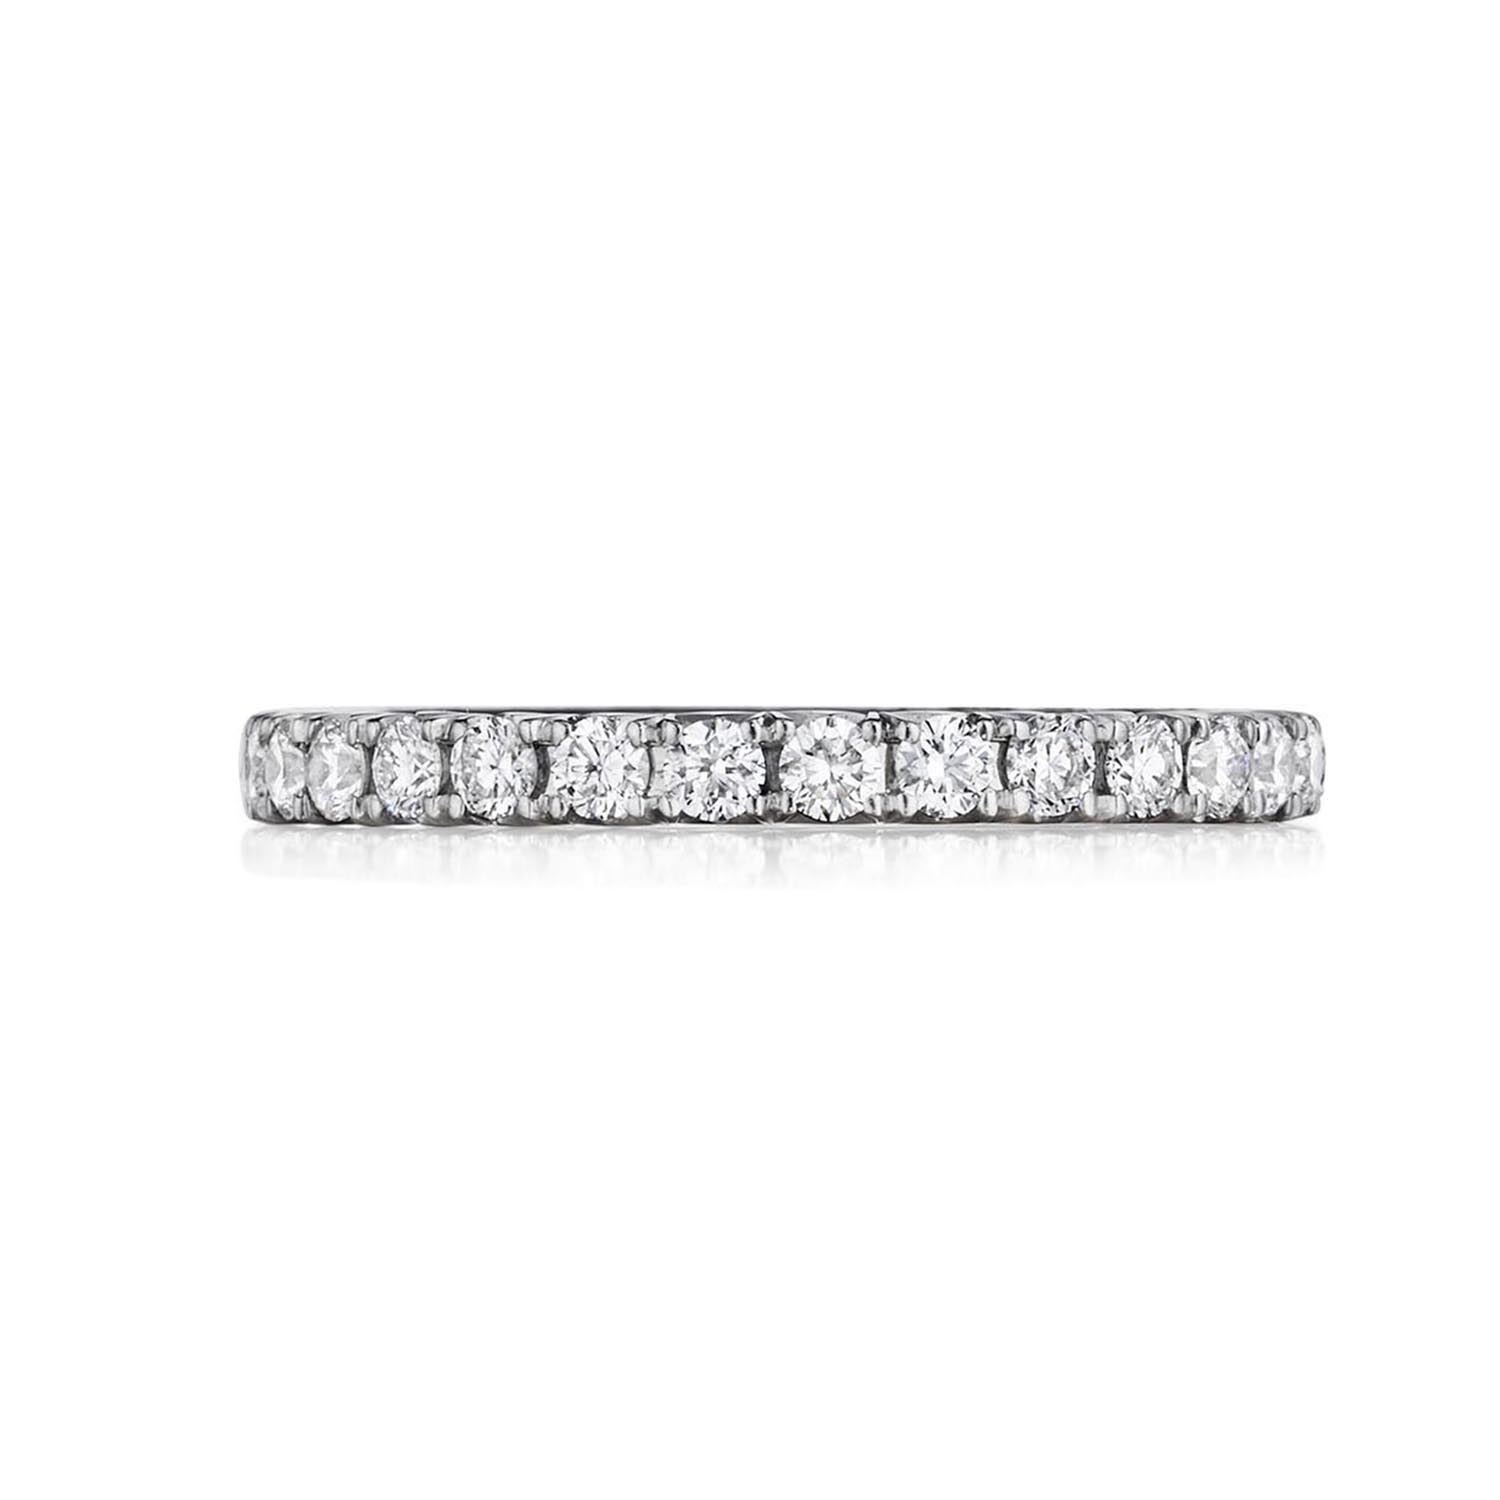 Henri Daussi 14 Karat White Gold Diamond Band